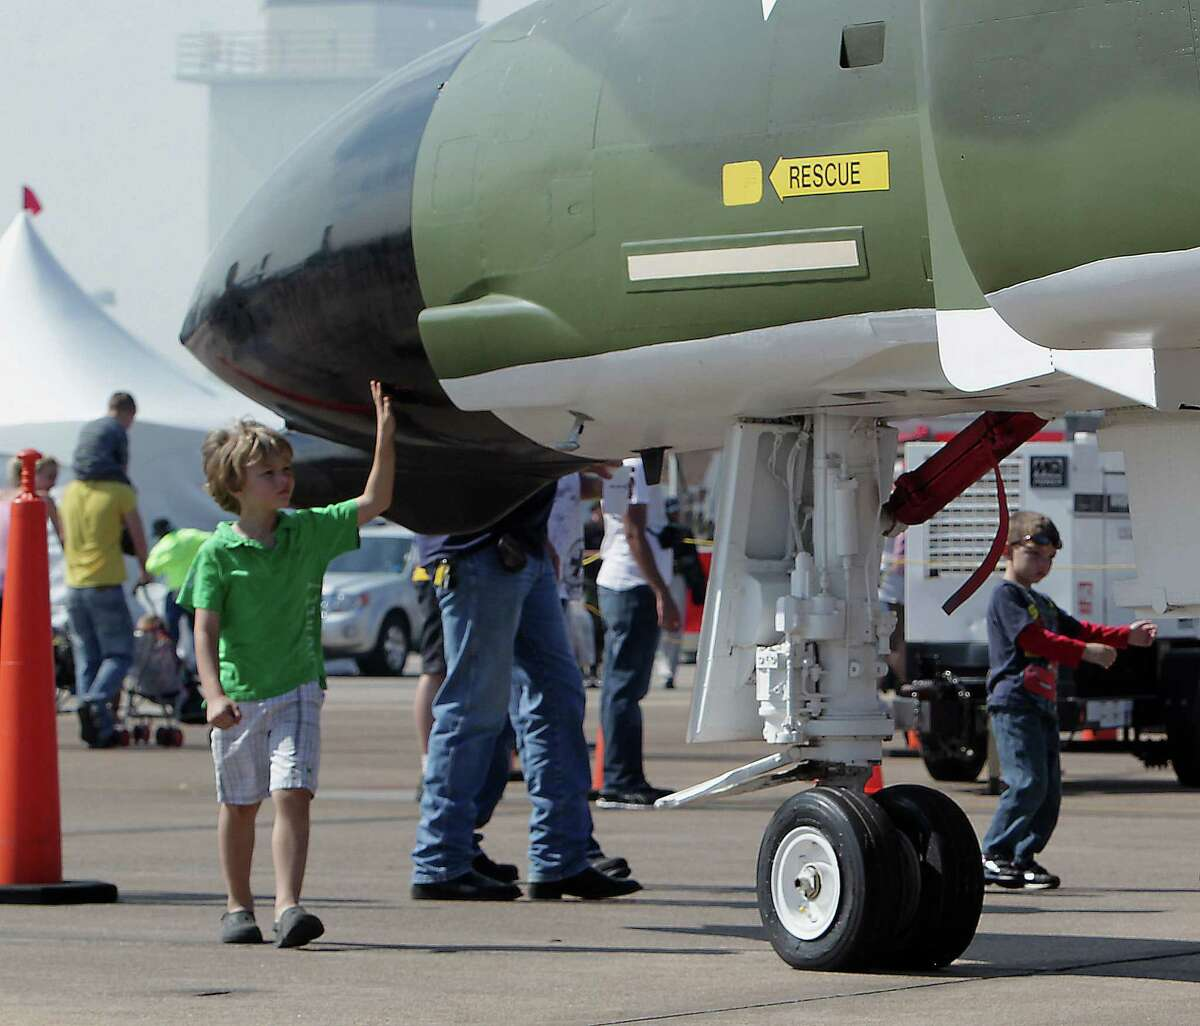 Five-year-old Wyatt Fieber runs his hands along a jet airplane on display at the Wings Over Houston Airshow at Ellington Airport Saturday, Oct. 26, 2013, in Houston.